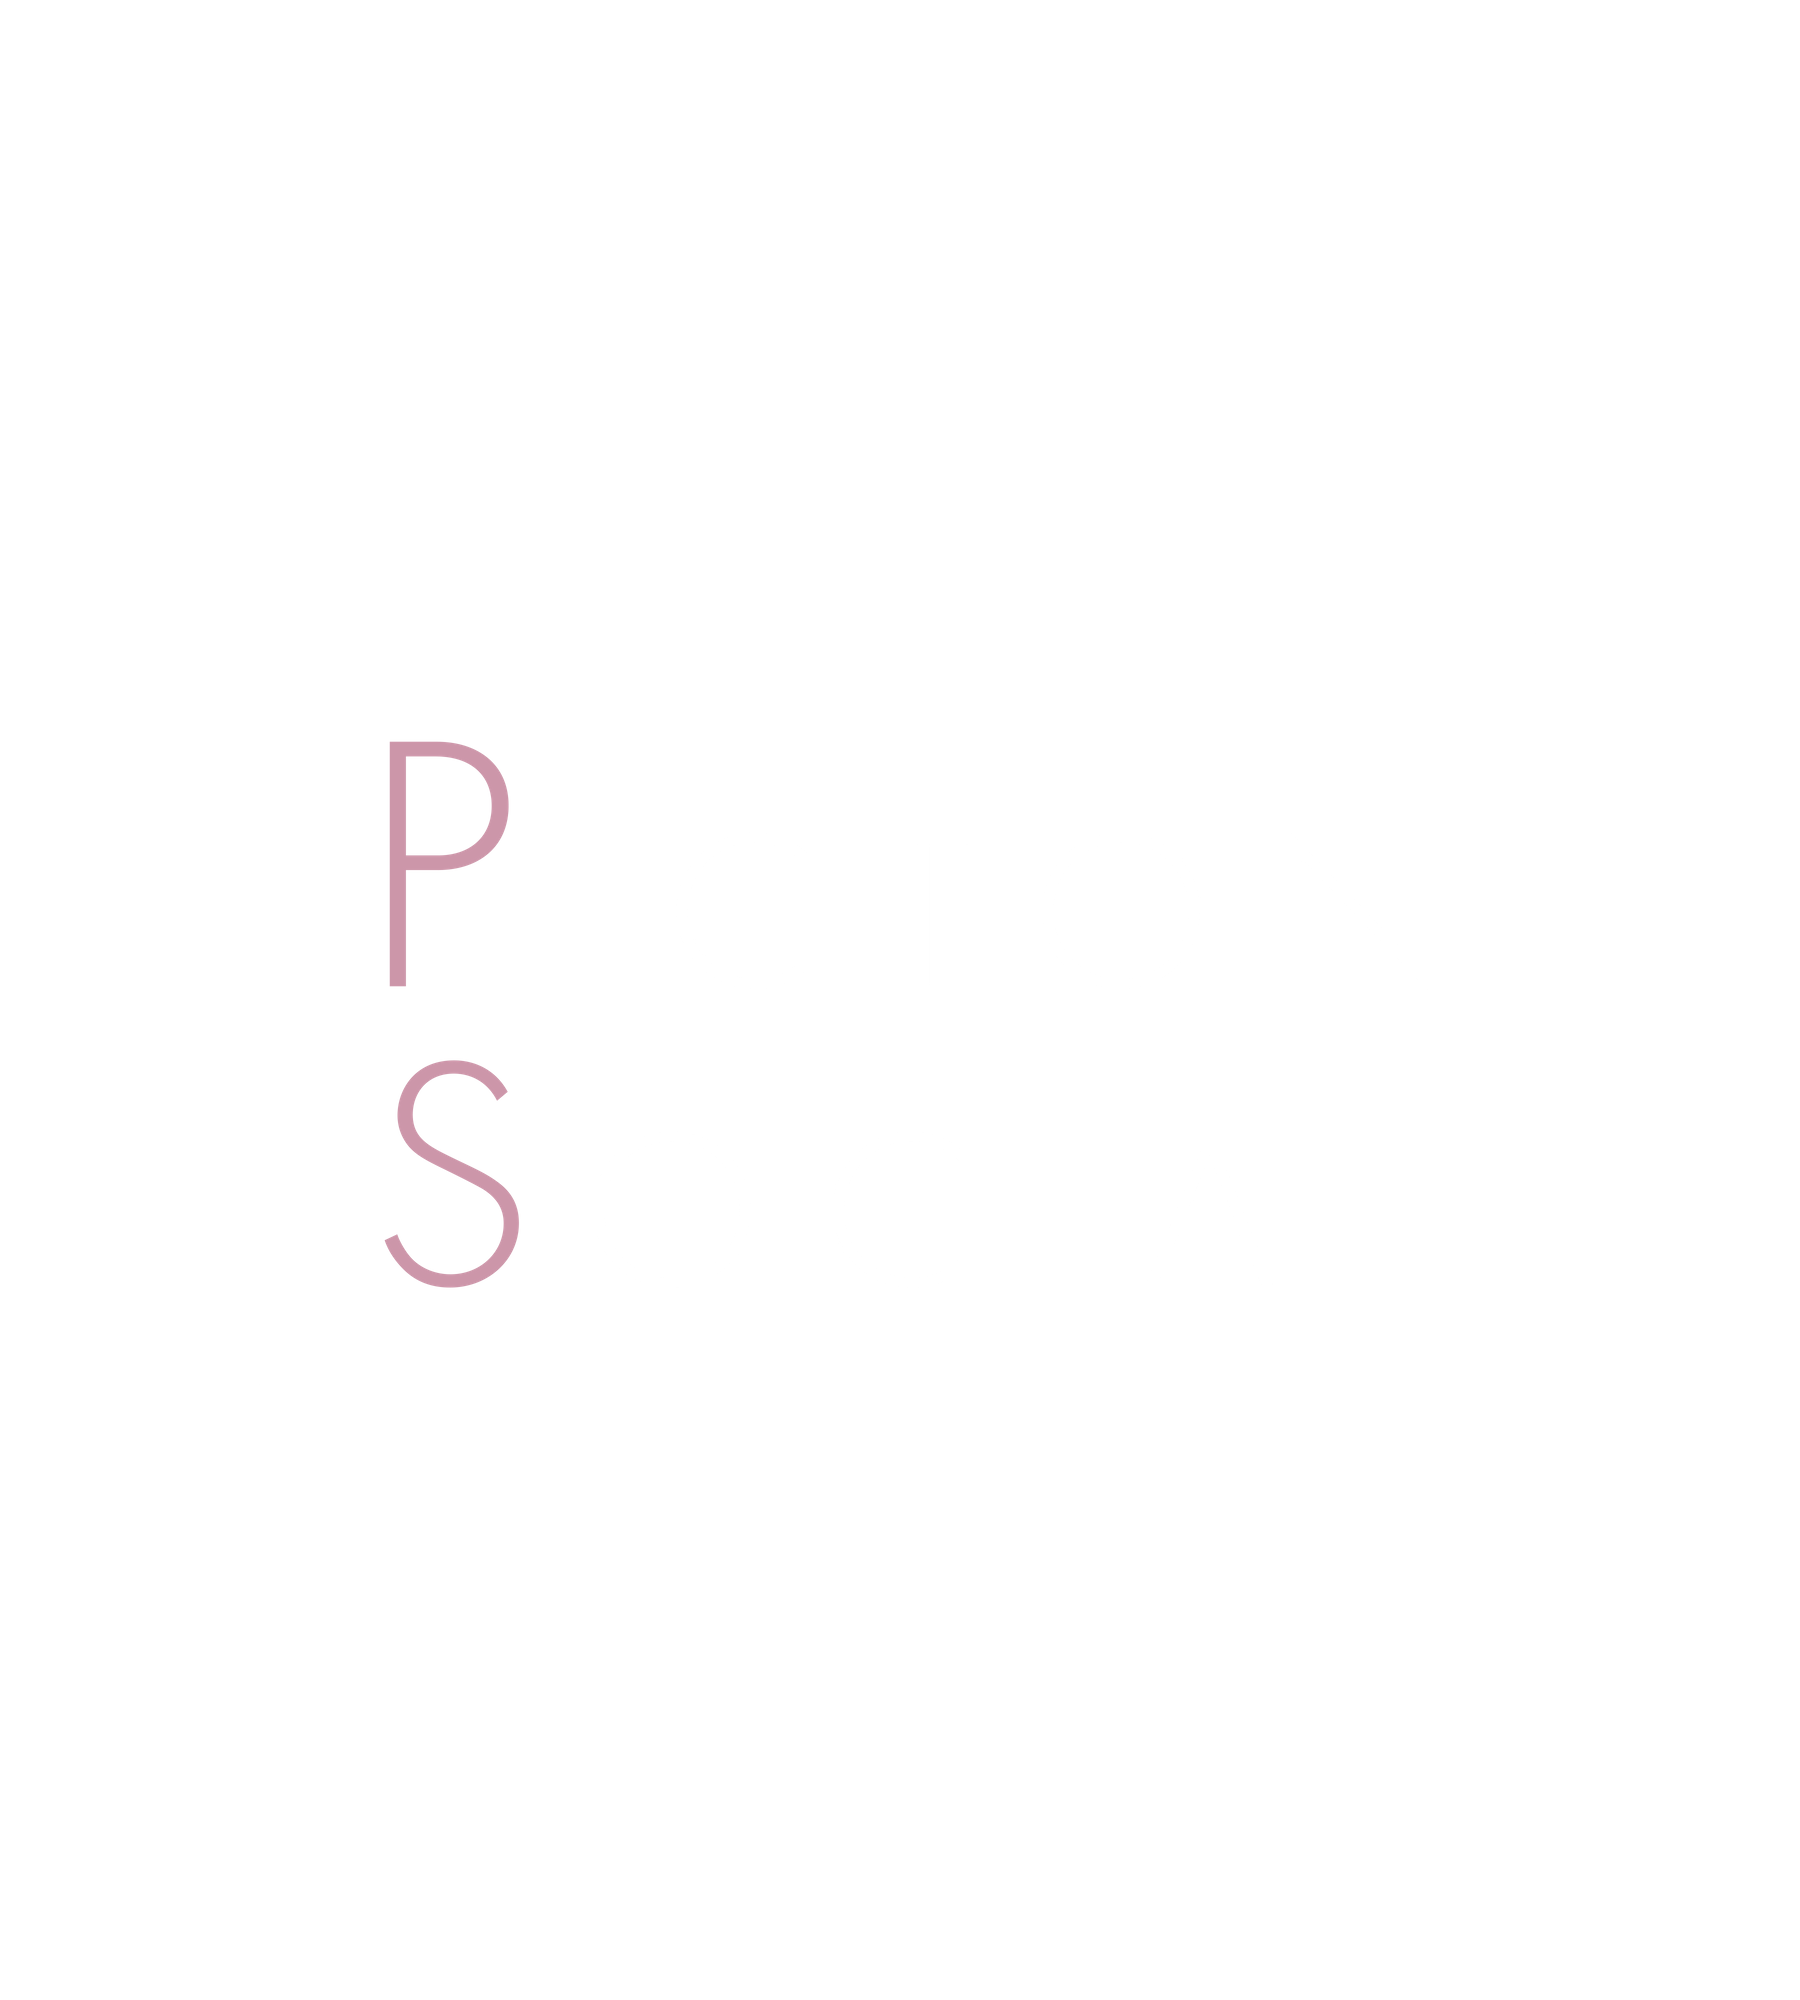 Picton Social - Coffee • Food • Functions